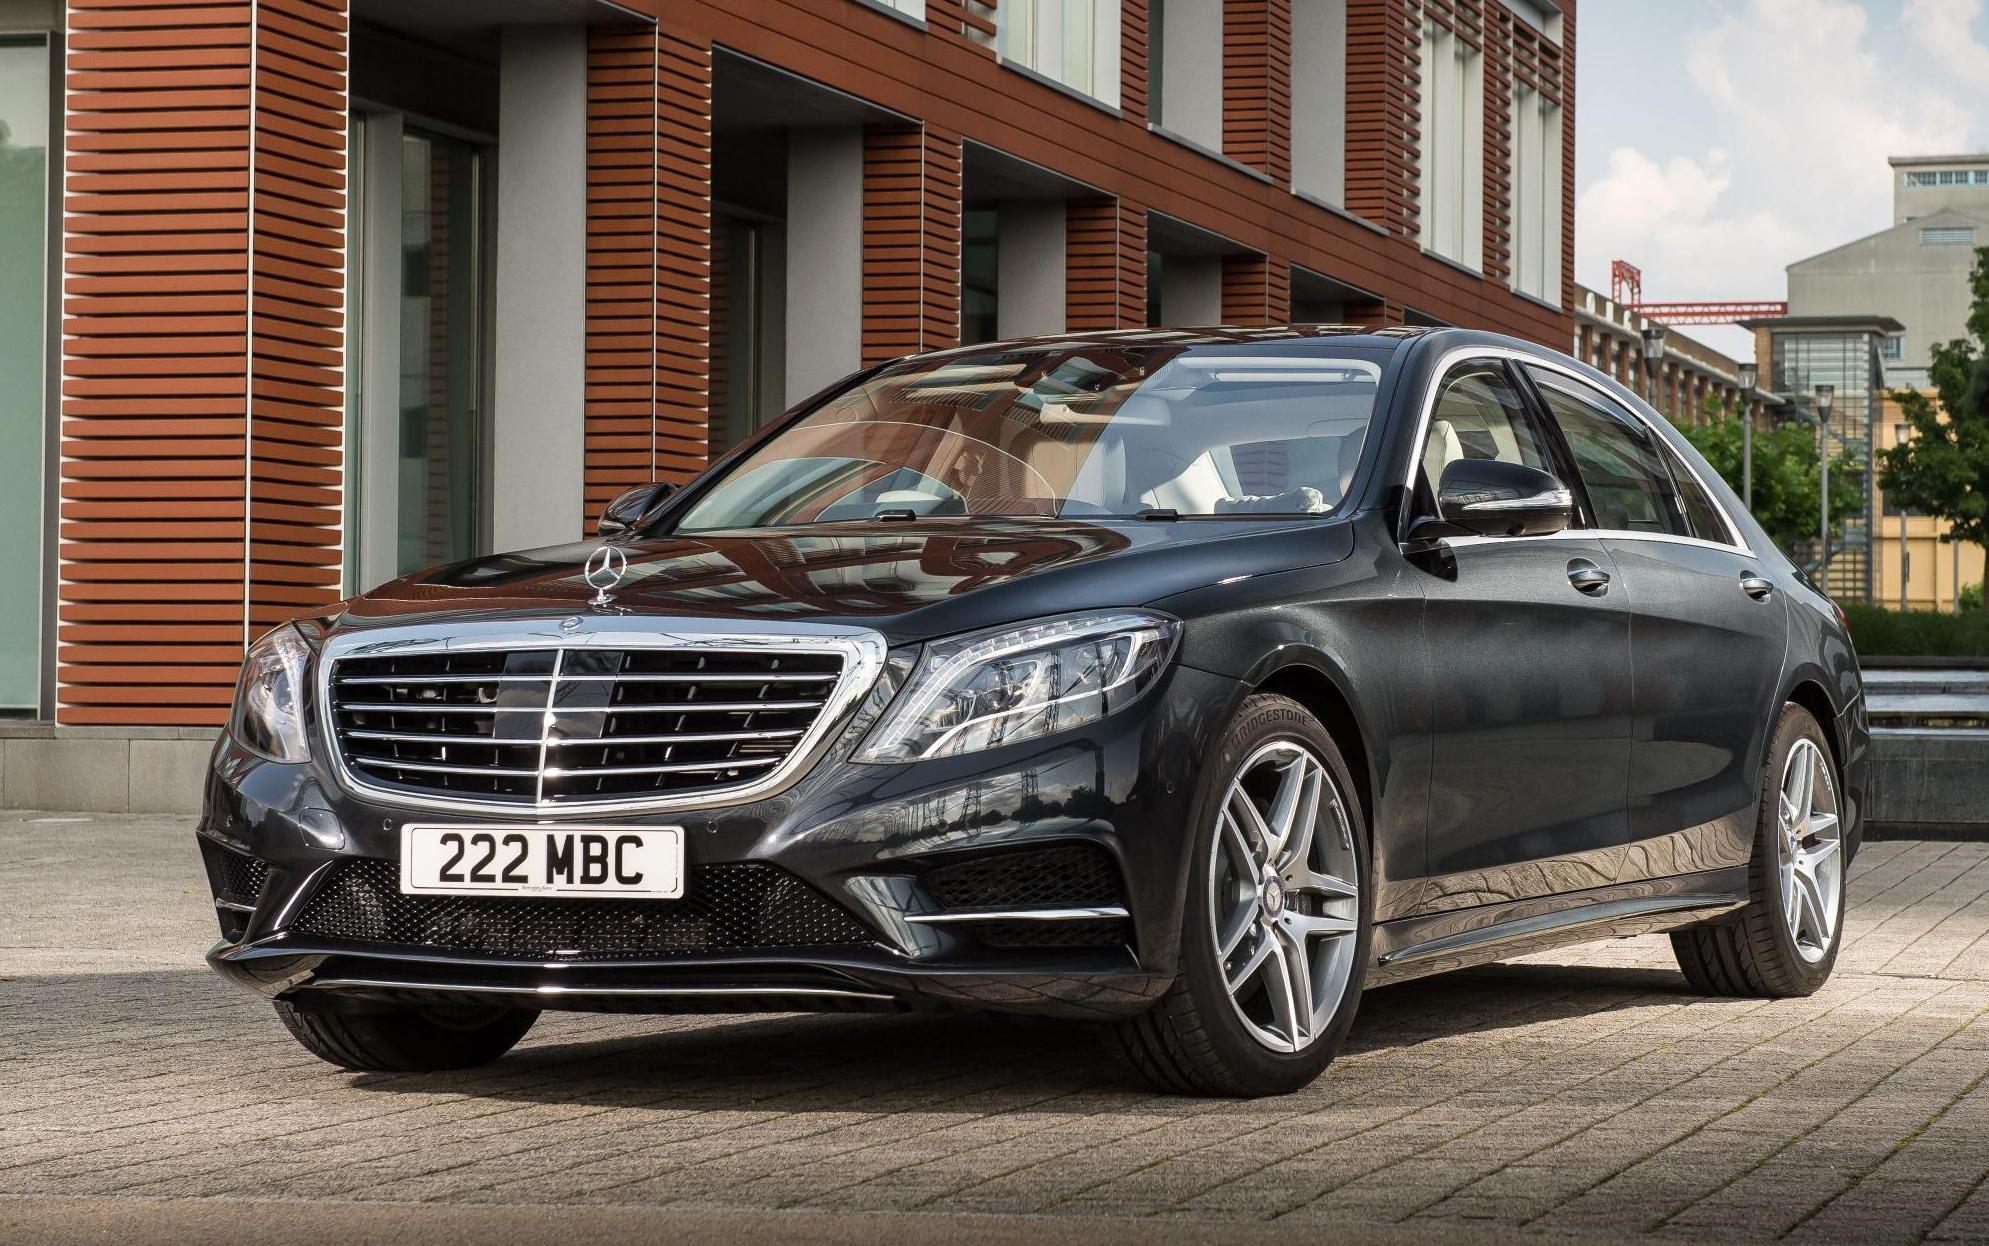 p s diesel west midlands saloon cdi benz and mercedes usedcars in auto used hand second class